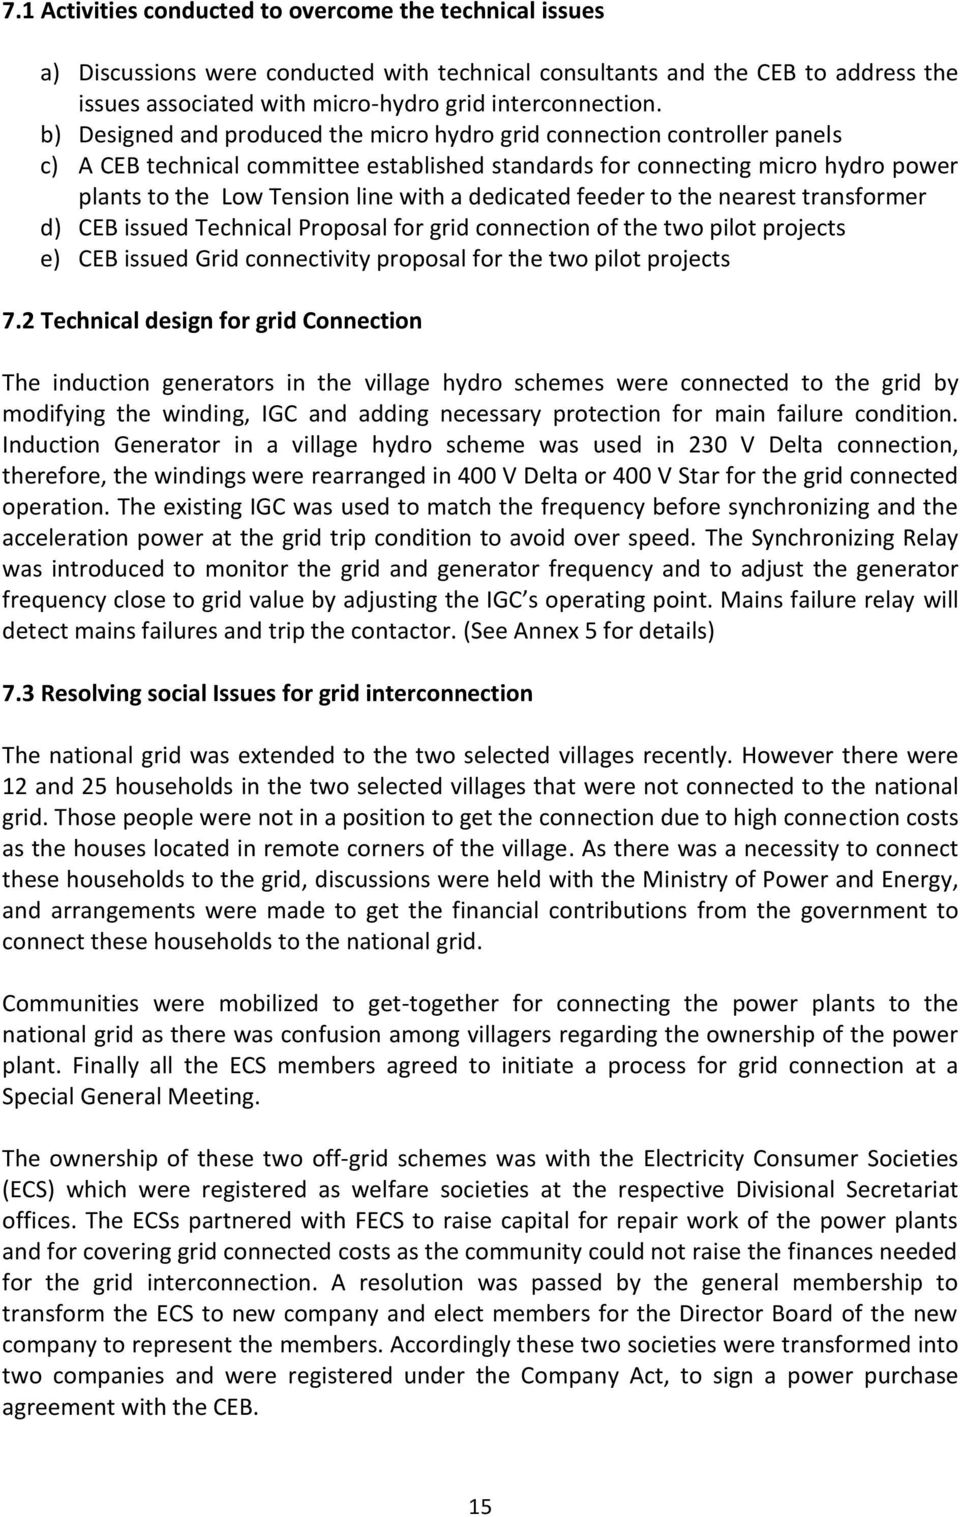 dedicated feeder to the nearest transformer d) CEB issued Technical Proposal for grid connection of the two pilot projects e) CEB issued Grid connectivity proposal for the two pilot projects 7.